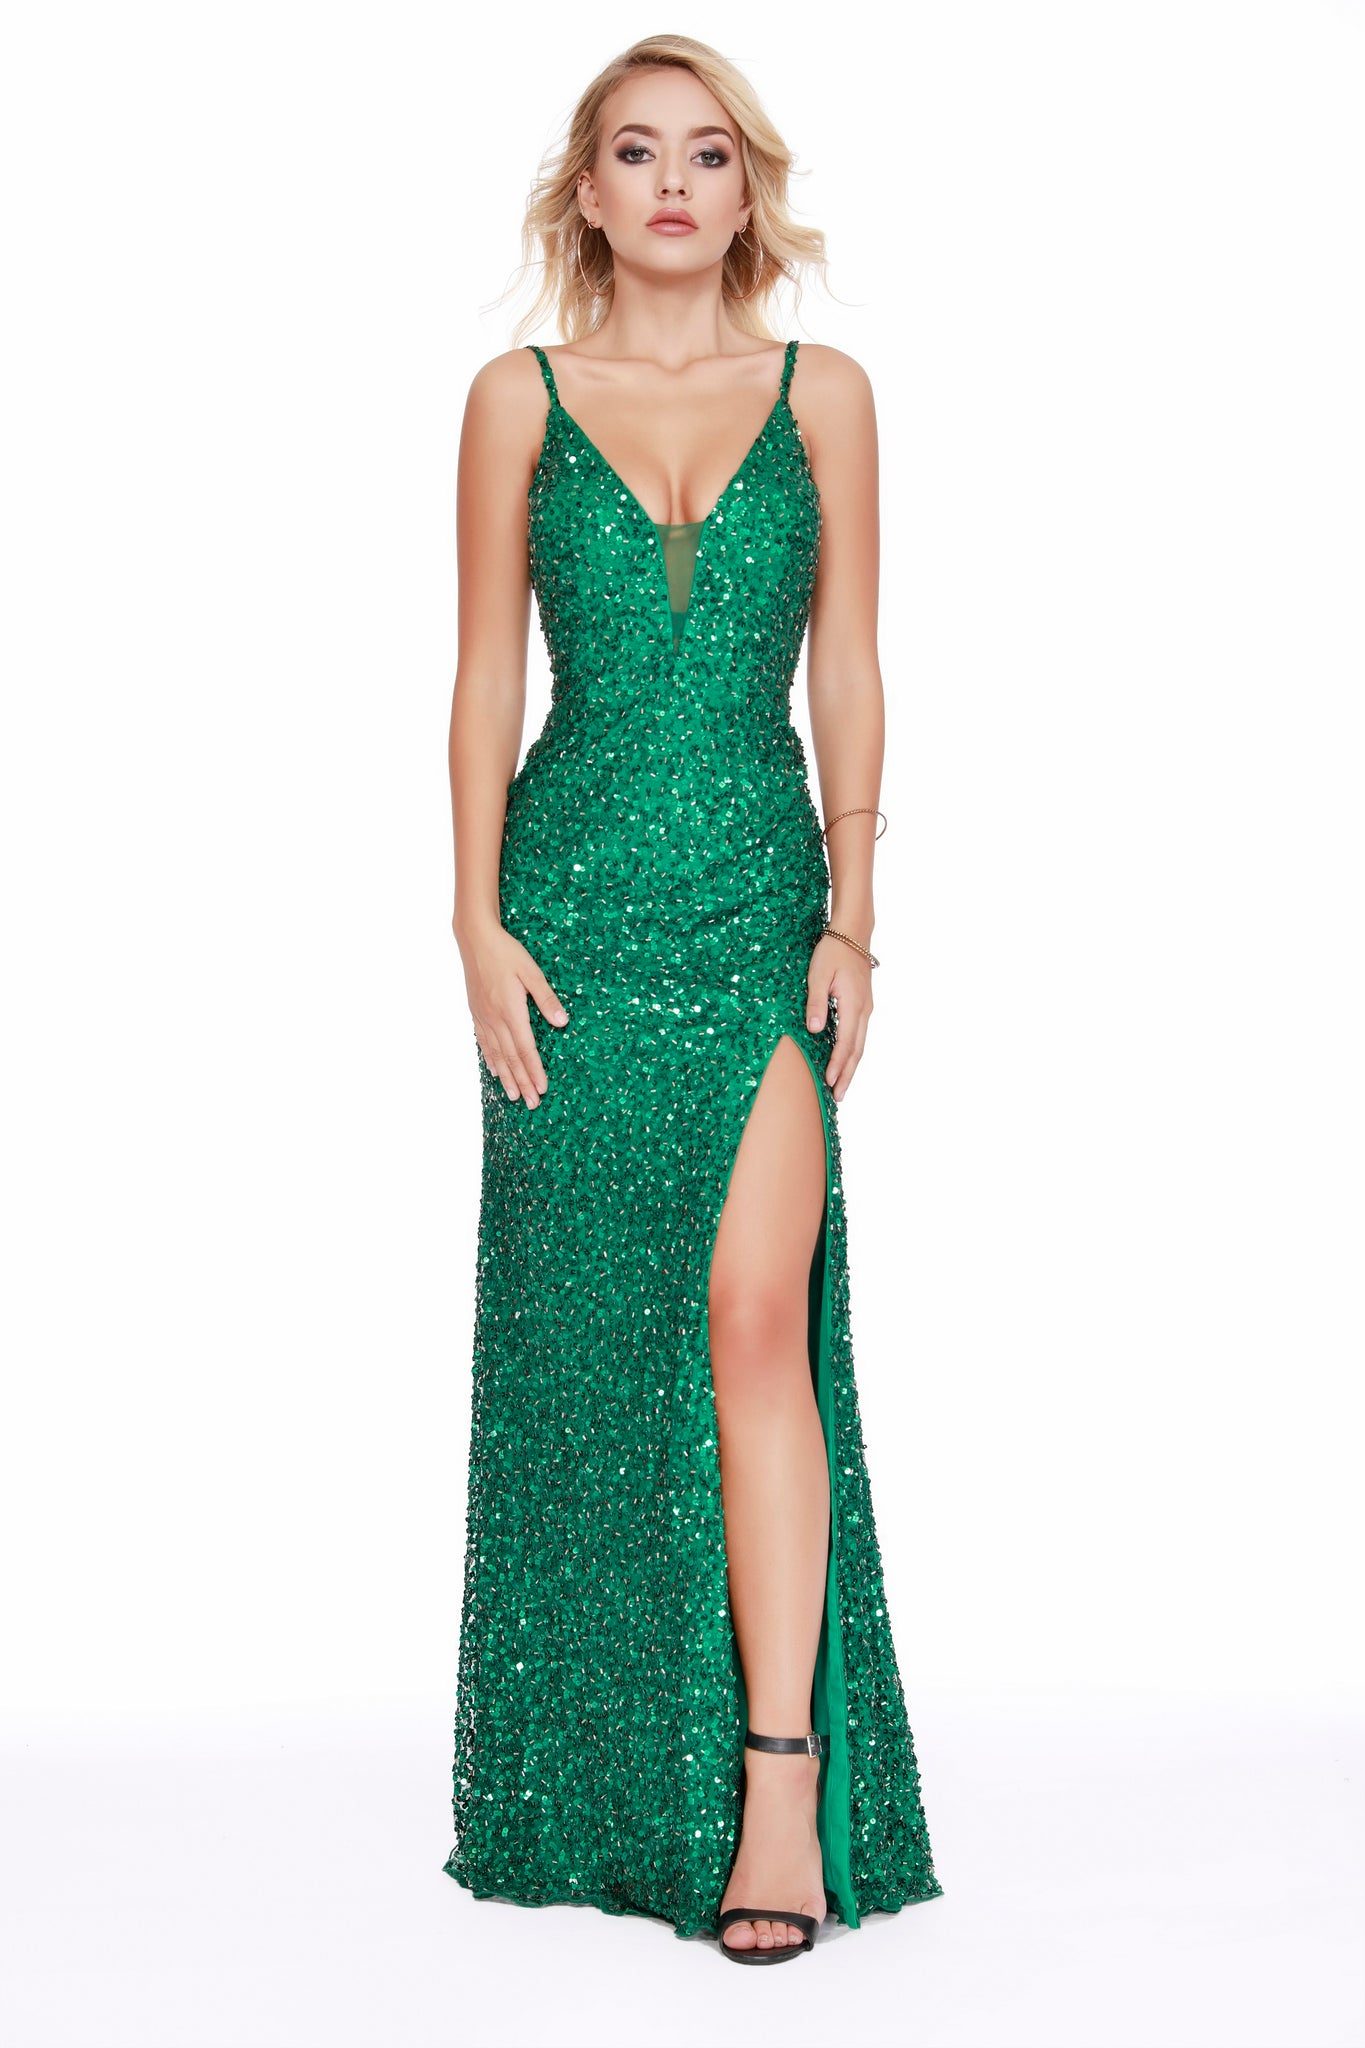 This Strapped V-Neck Sequin Body Hugging Prom Dress With Slit 12223